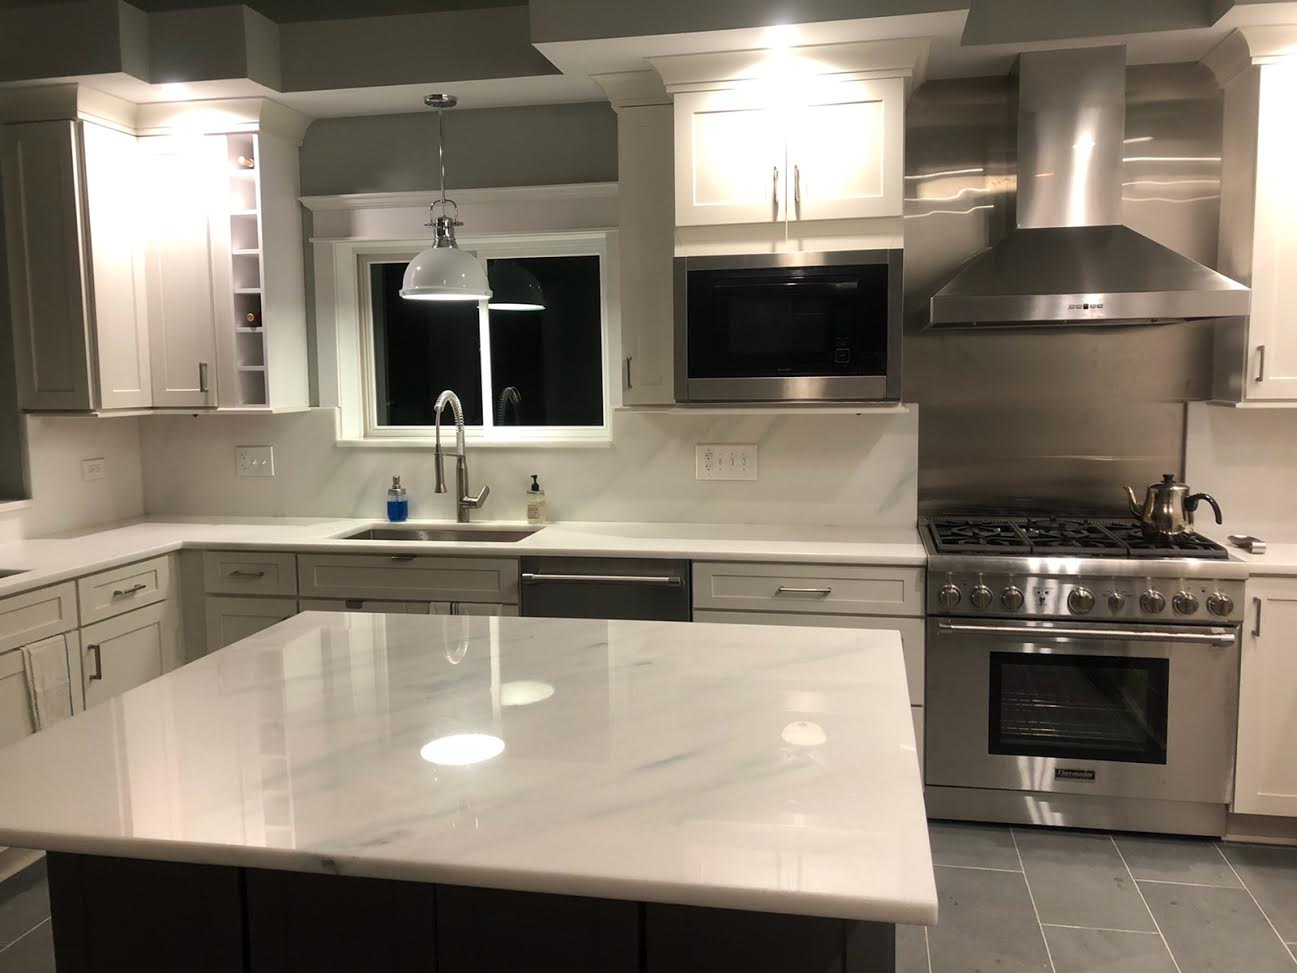 images inspirations charming granite fort mcmurray outstanding countertop countertops white including in